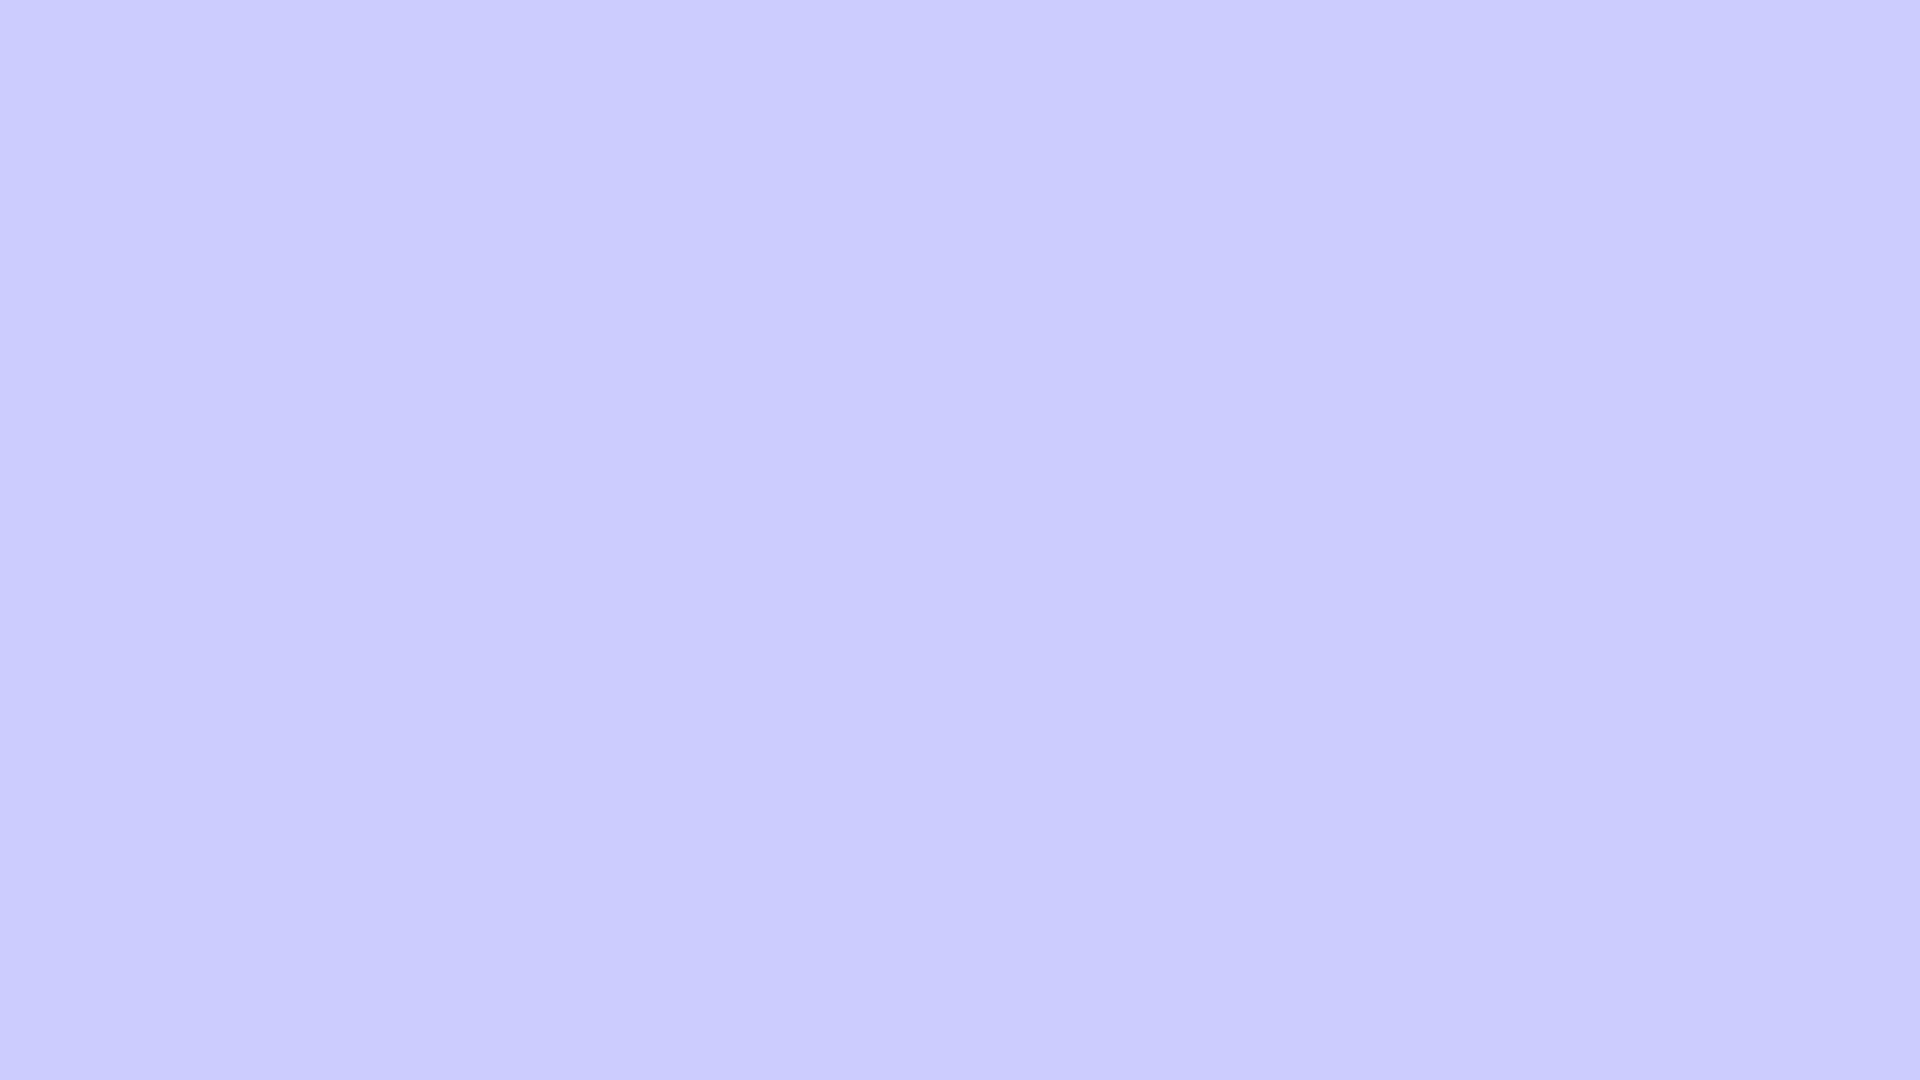 1920x1080 Periwinkle Solid Color Background